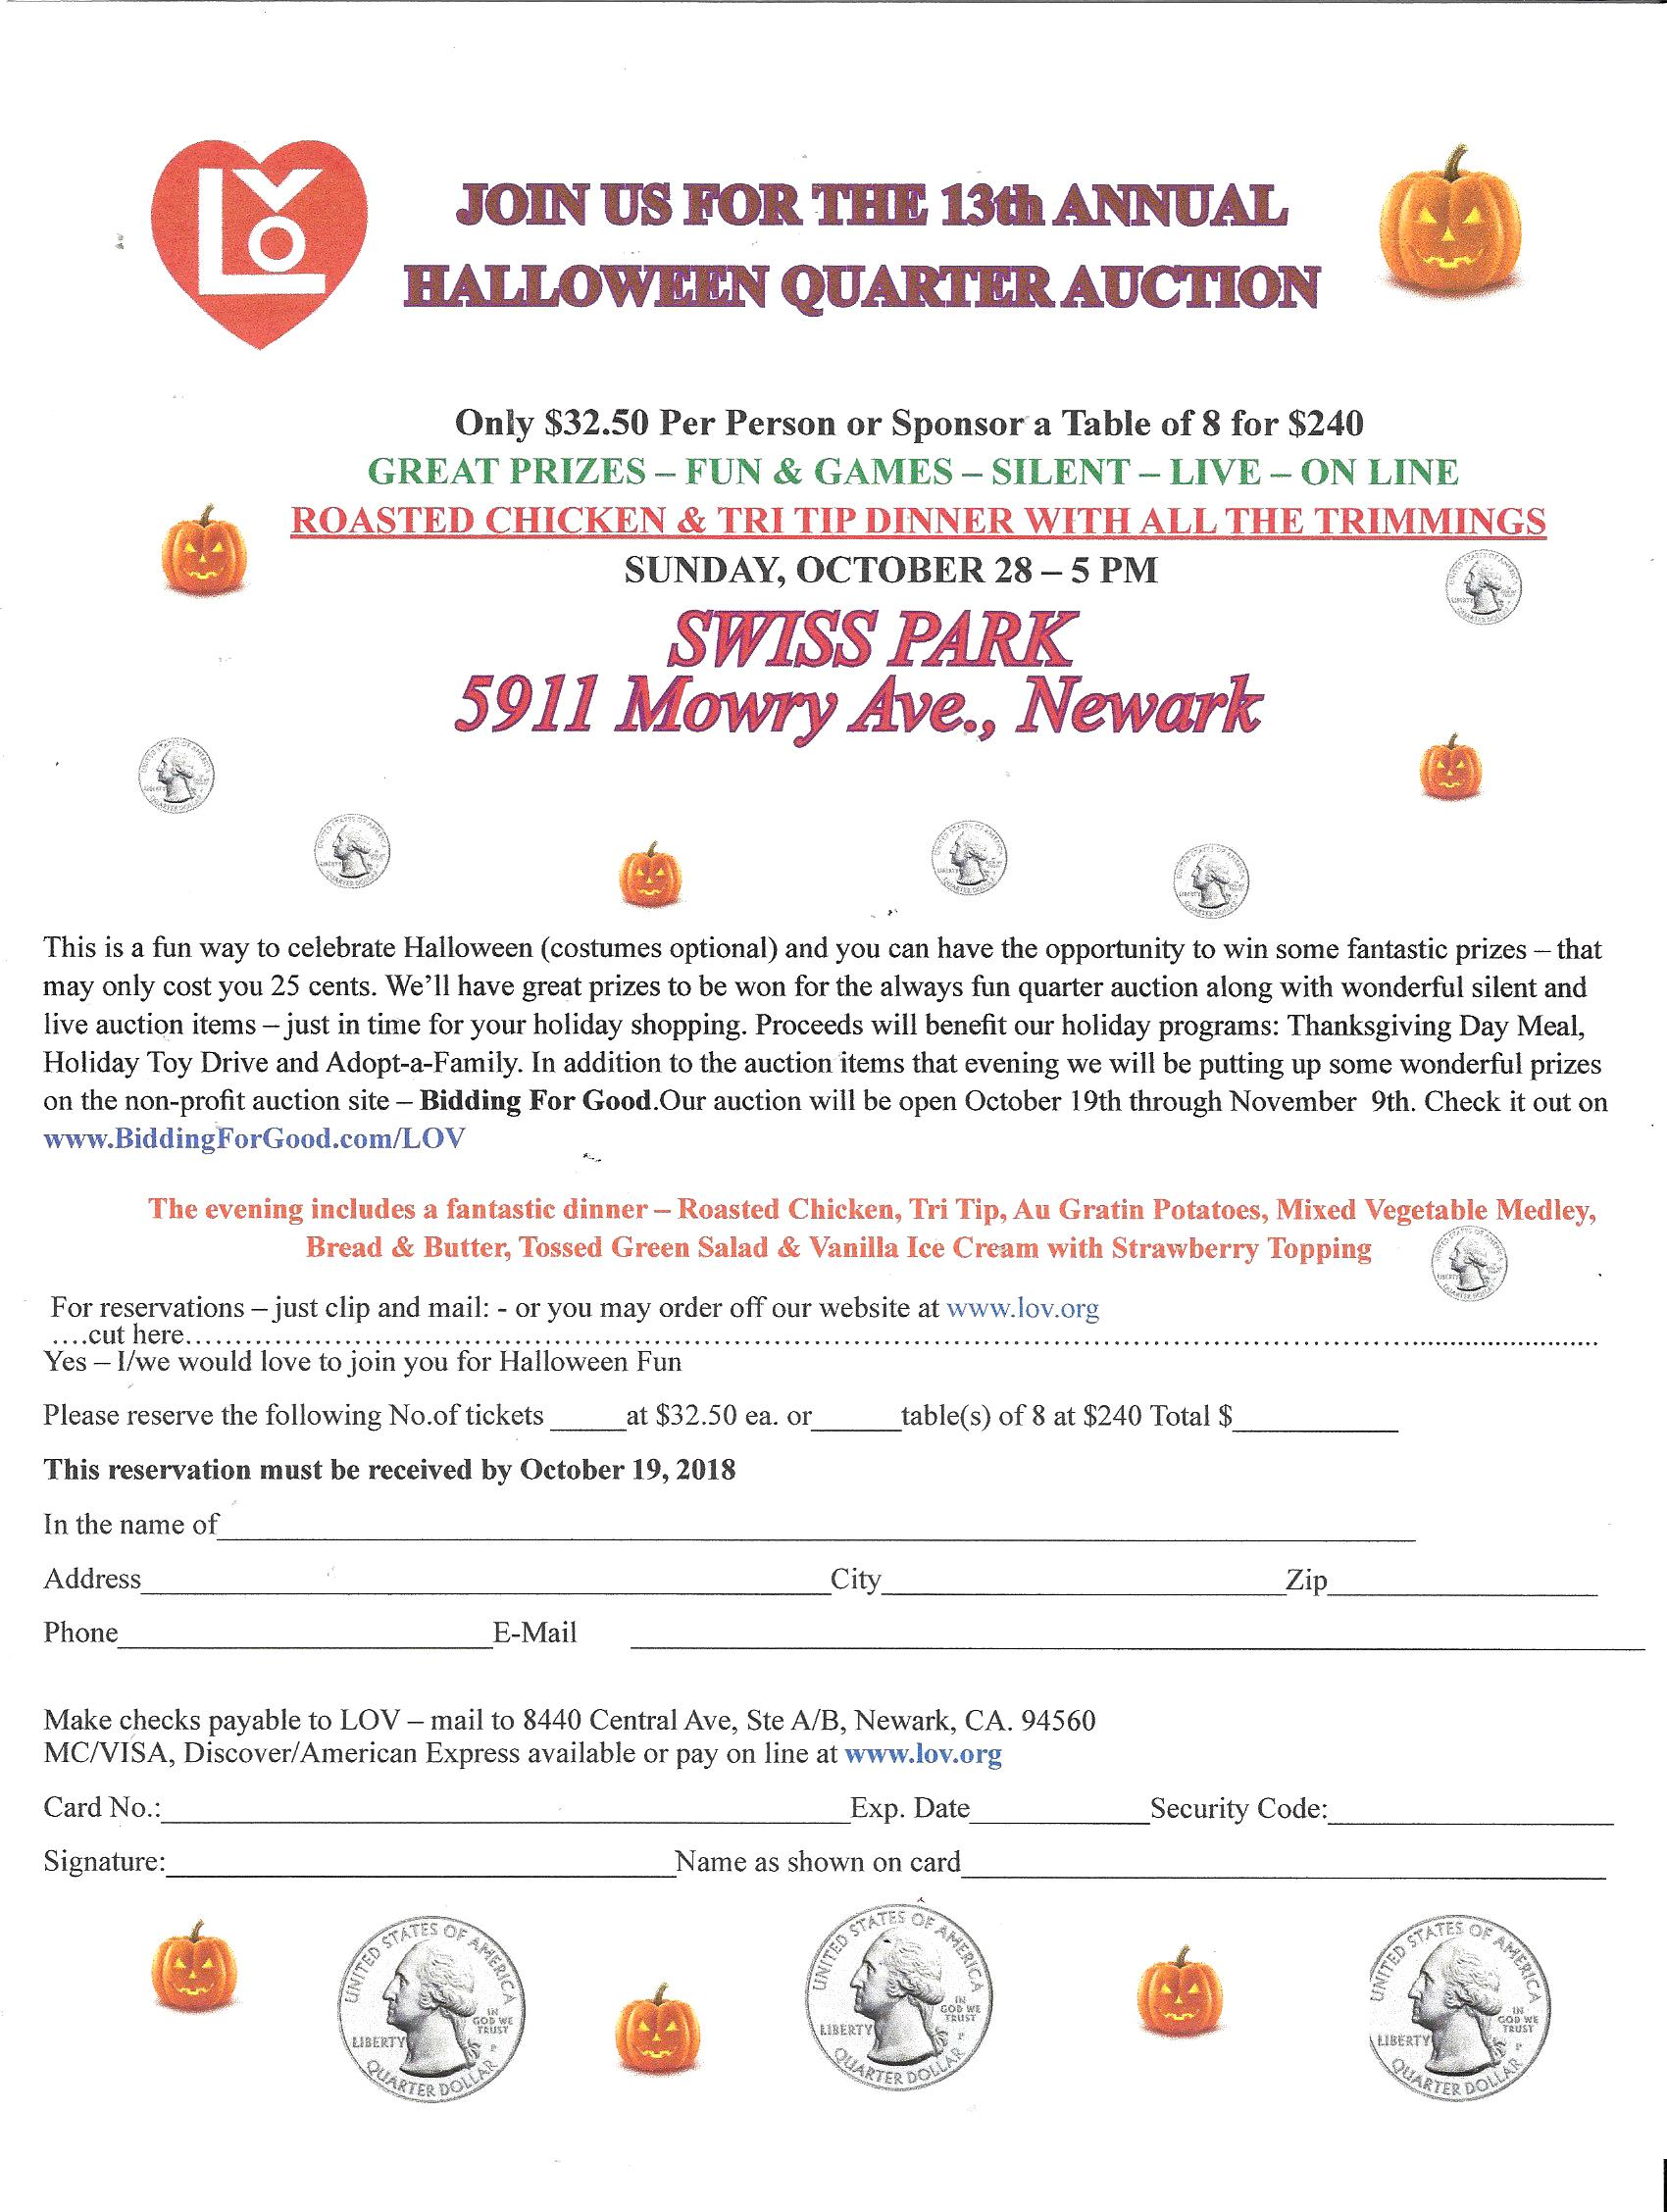 HALLOWEEN QUARTER AUCTION